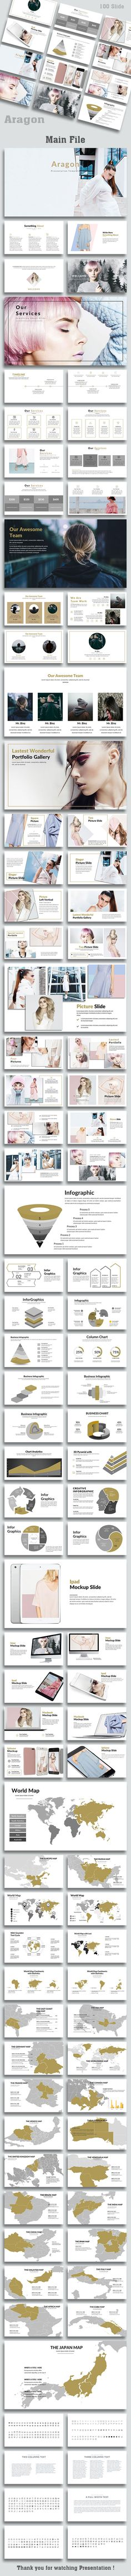 Aragon - Creative PowerPoint Template - Creative PowerPoint Templates Download here: https://graphicriver.net/item/aragon-creative-powerpoint-template/19805428?ref=classicdesignp